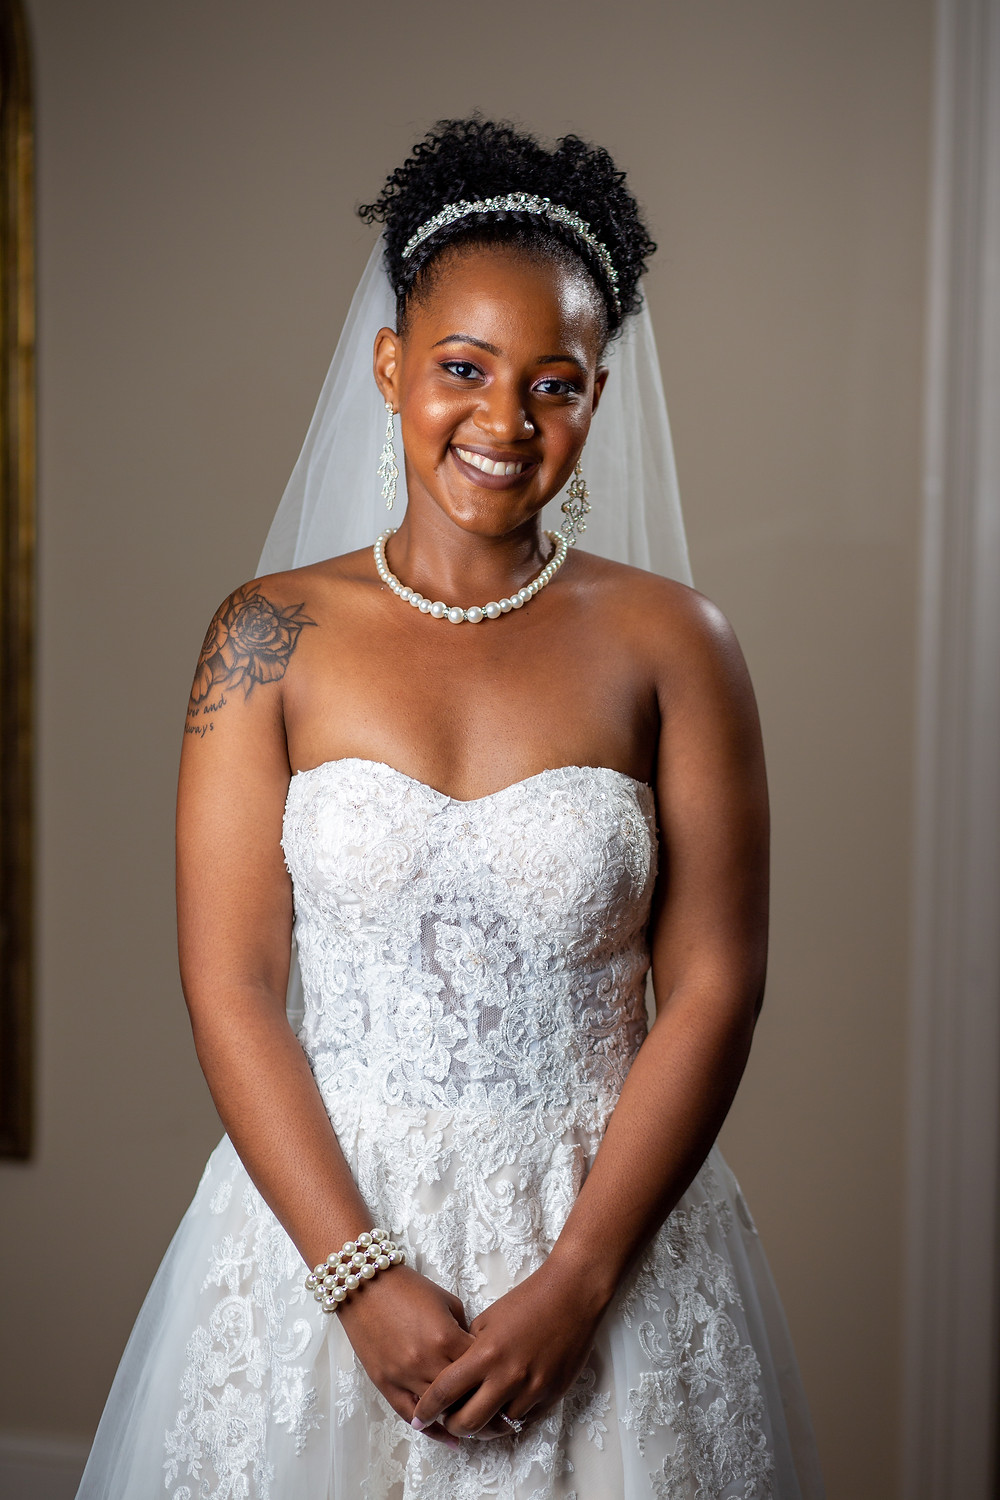 The bride posing for a portrait in her stunning wedding dress at Crosskeys Vineyards in Mt. Crawford, Virginia.